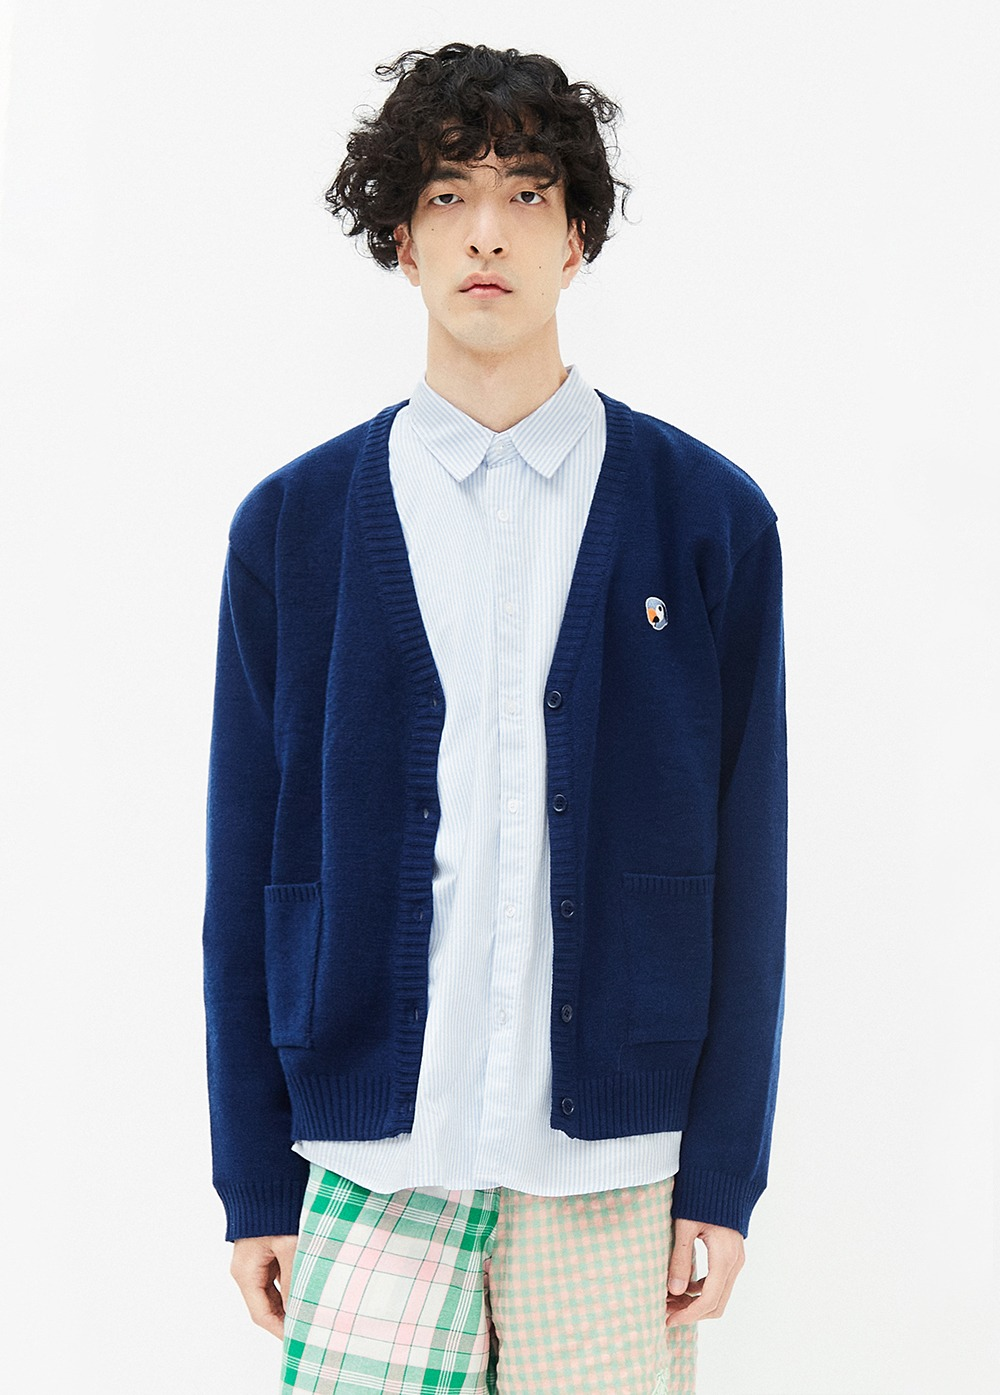 KANCO LOGO CARDIGAN navy